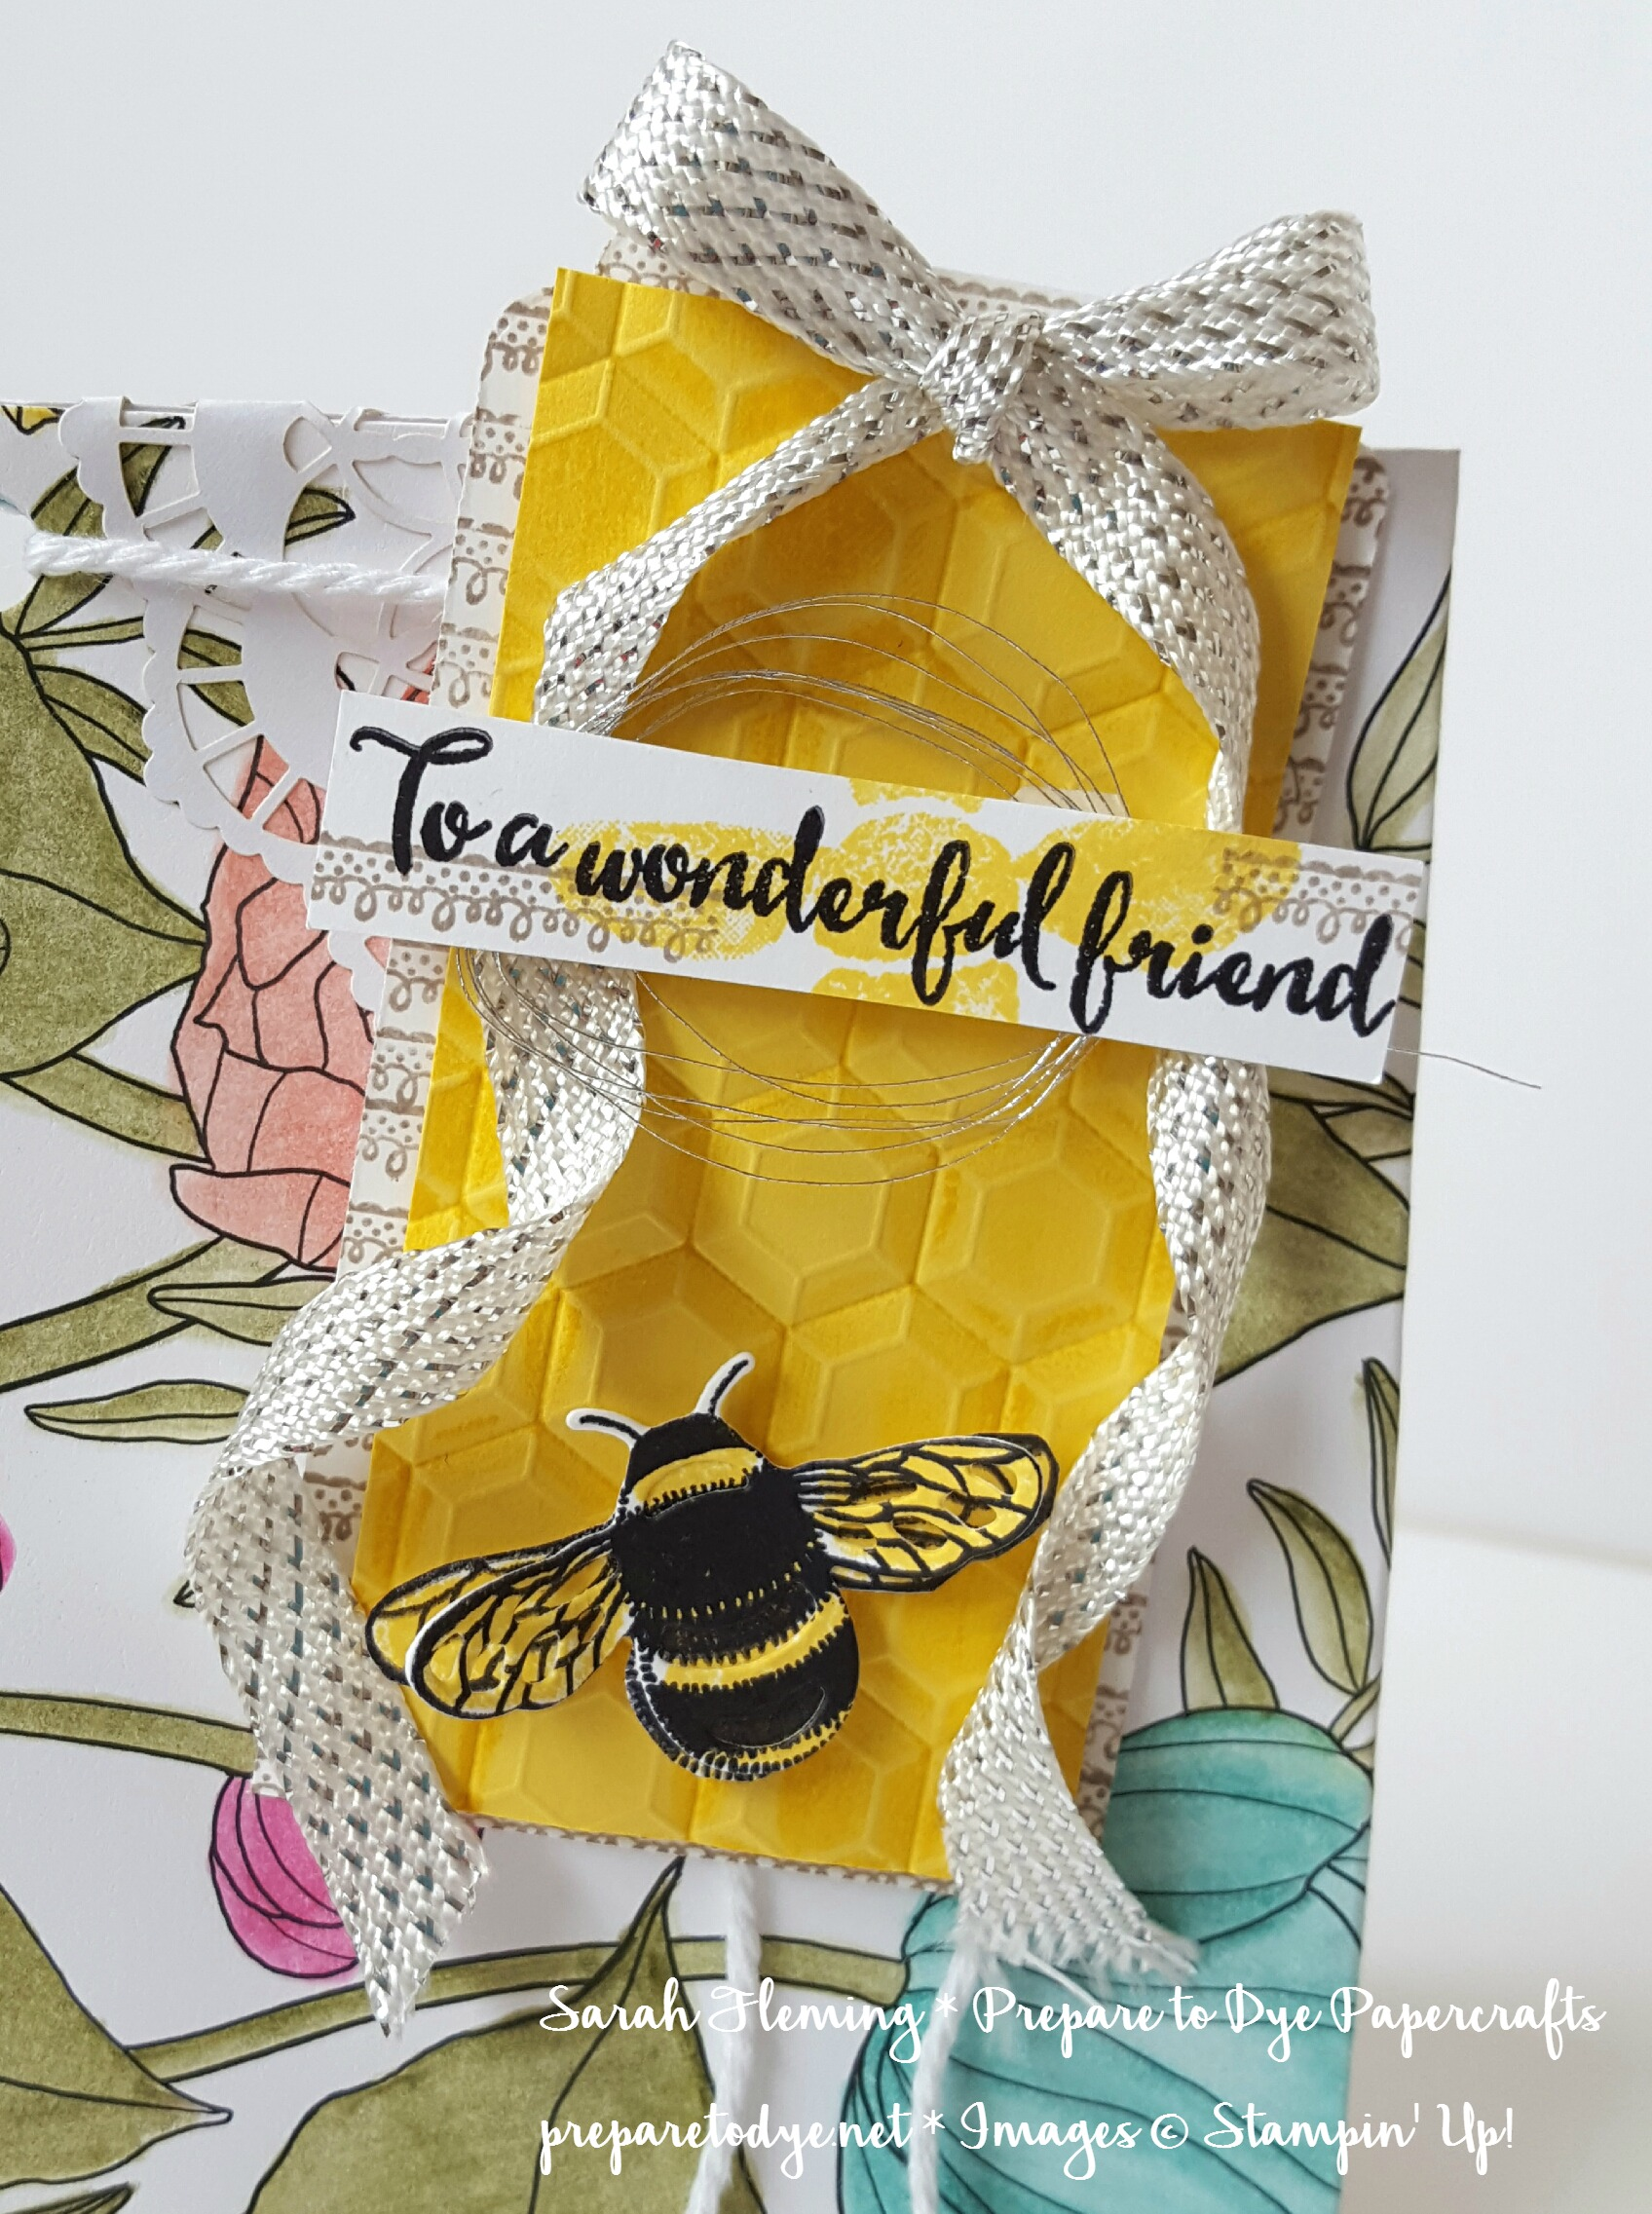 Stampin' Up! Inside the Lines designer series paper - Sale-A-Bration freebie with $50 purchase! Hexagons Dynamic embossing folder and Dragonfly Dreams bundle - Sarah Fleming - Prepare to Dye Papercrafts